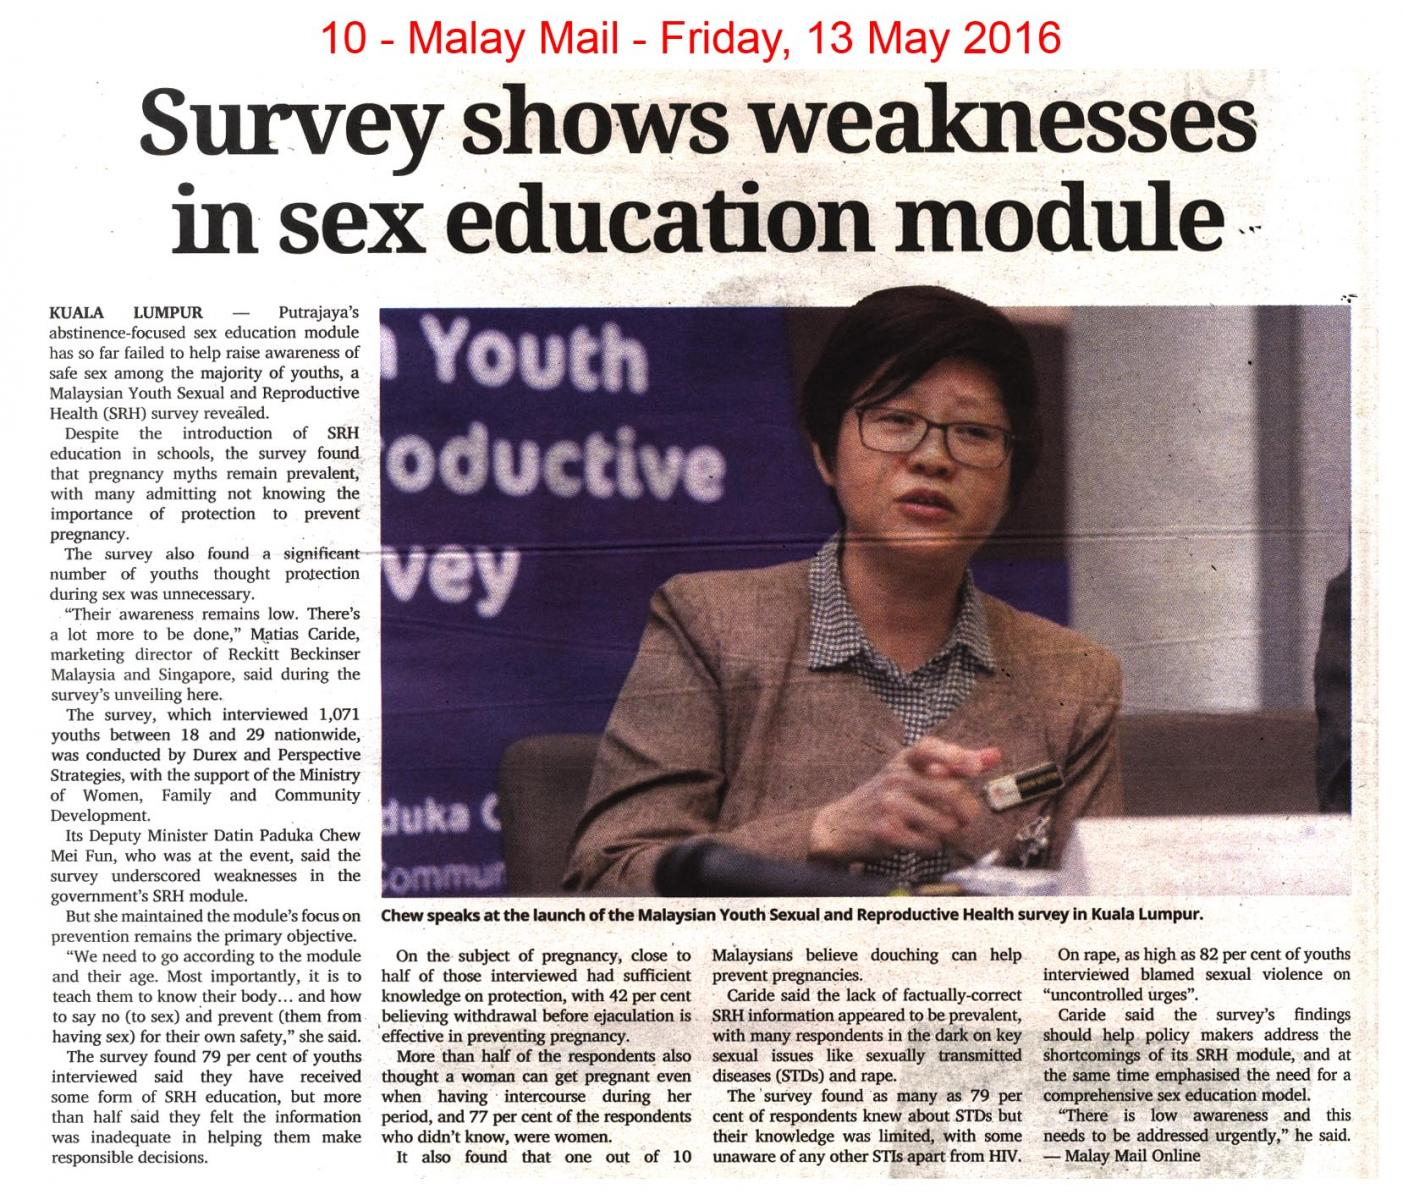 mm13 5 16 survey shows weaknesses in sex education module jpg